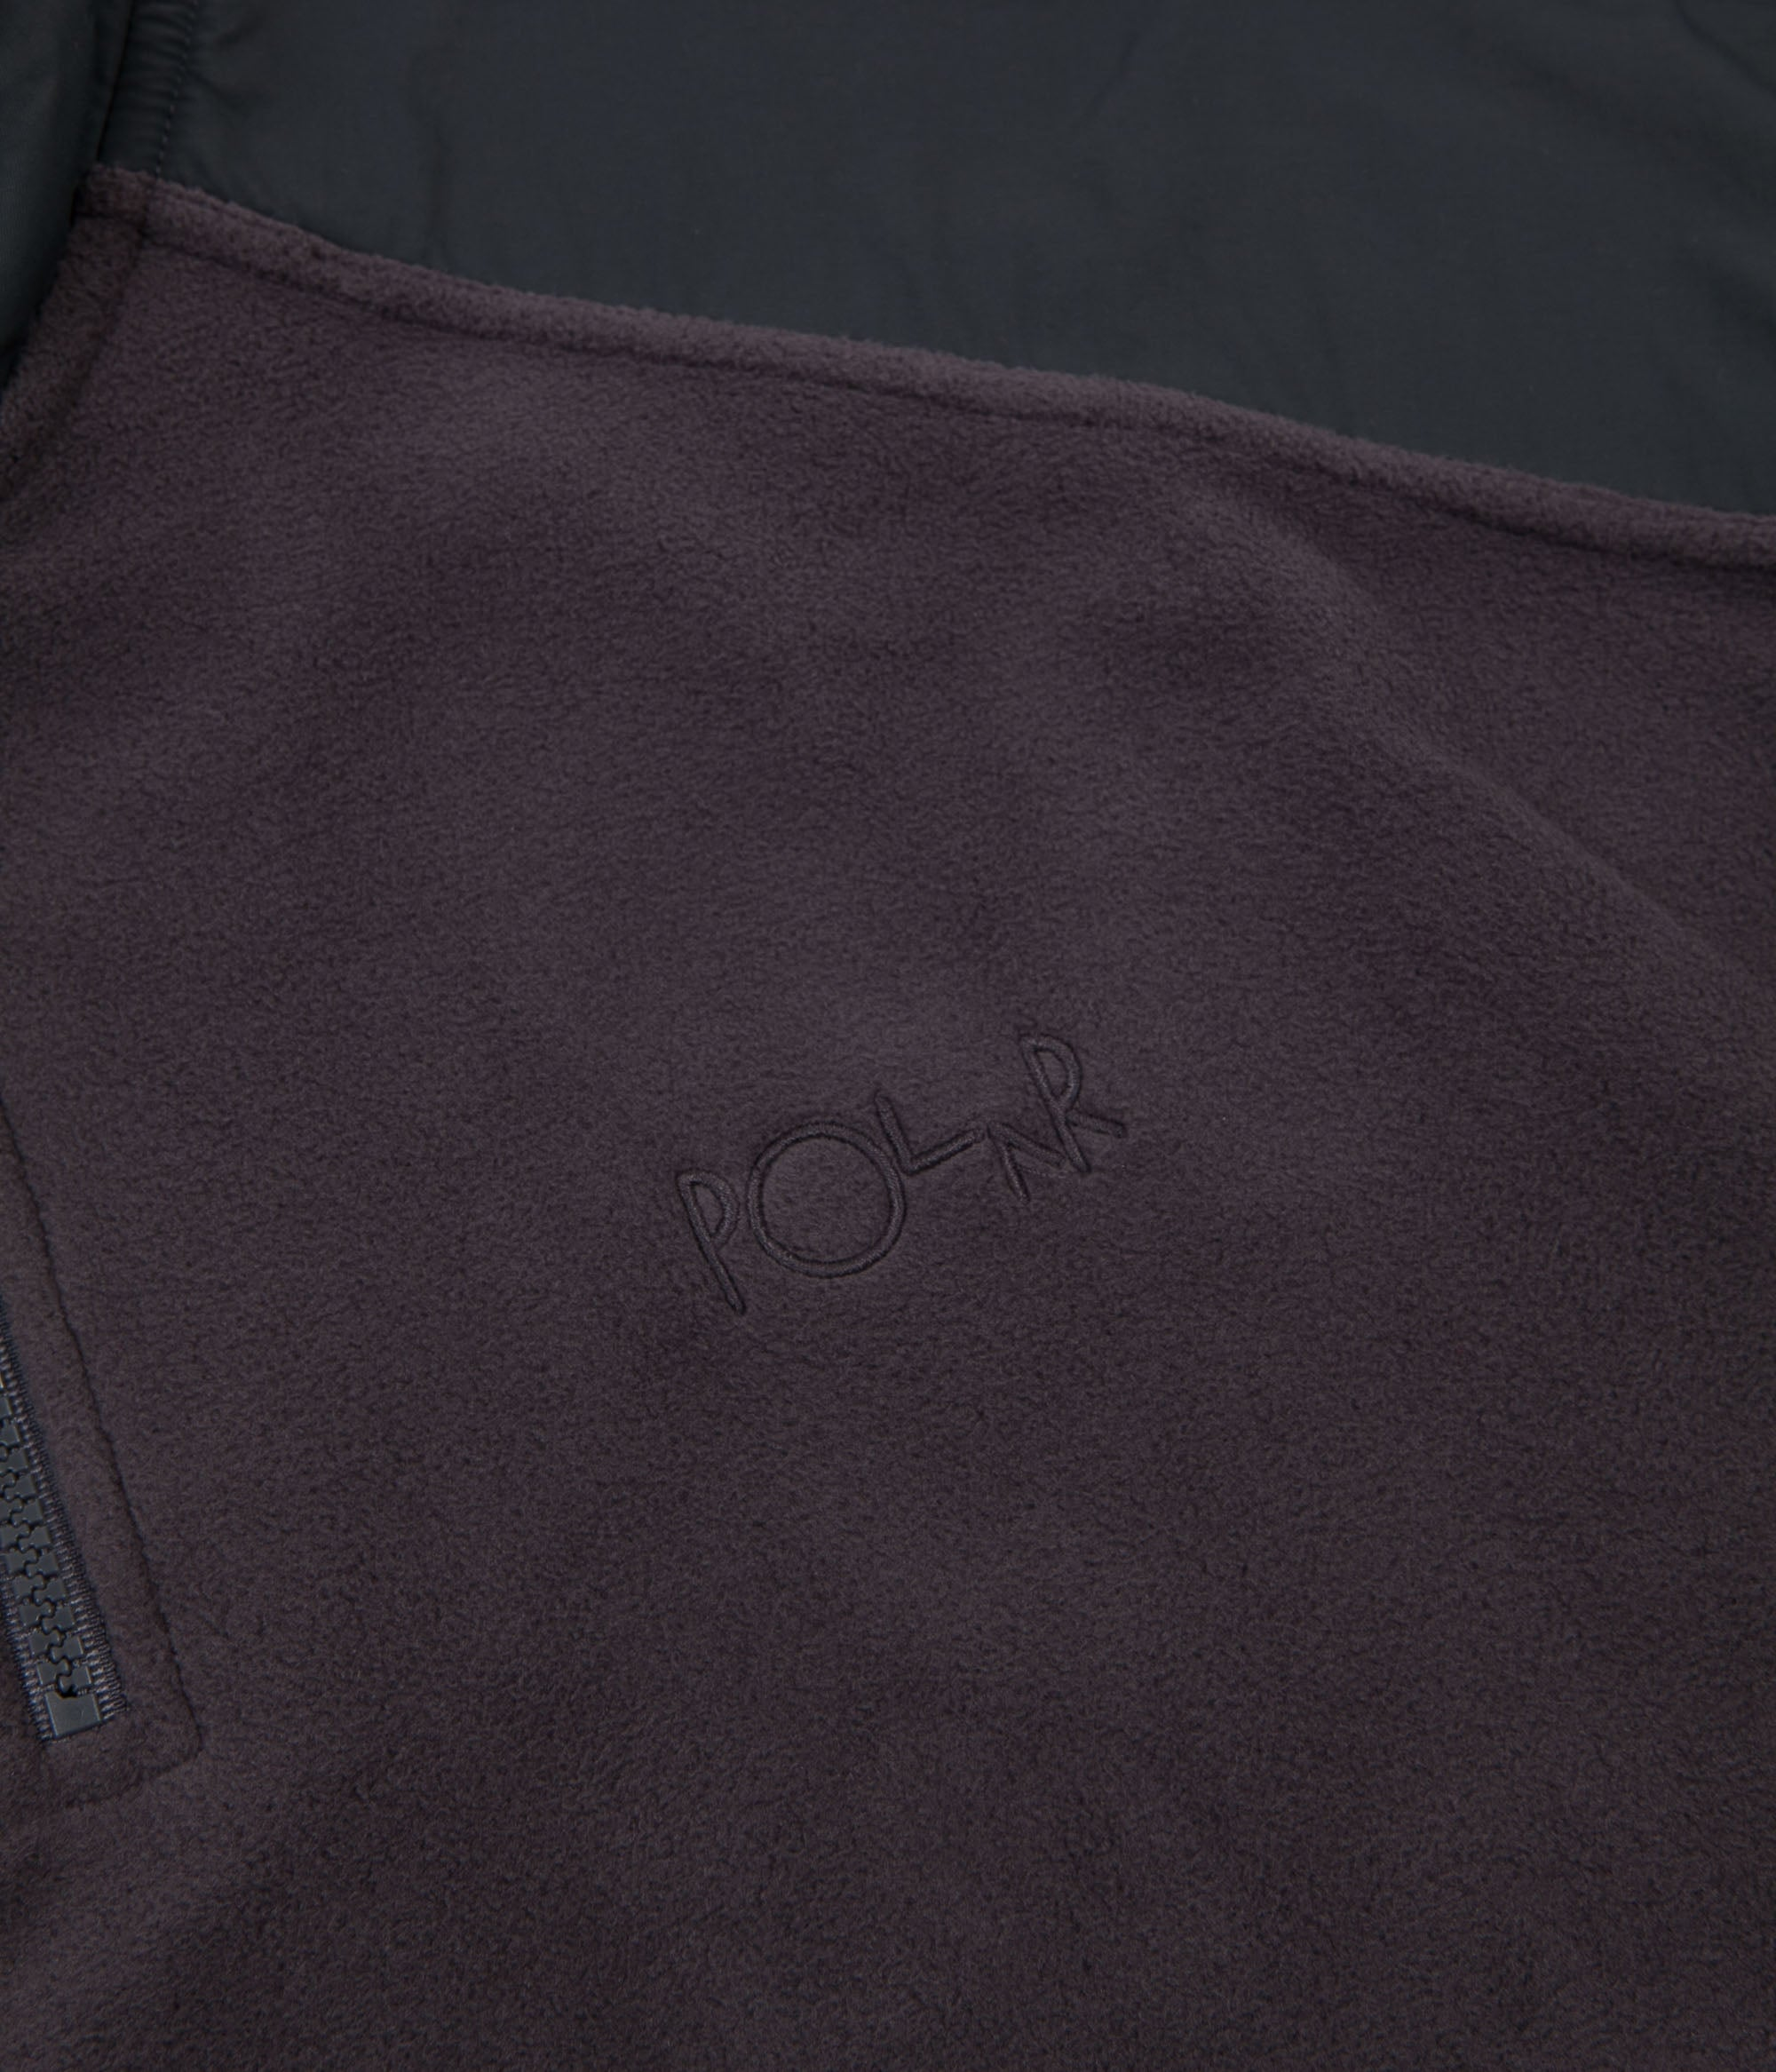 Polar Lightweight 1/4 Zip Sweatshirt - Graphite